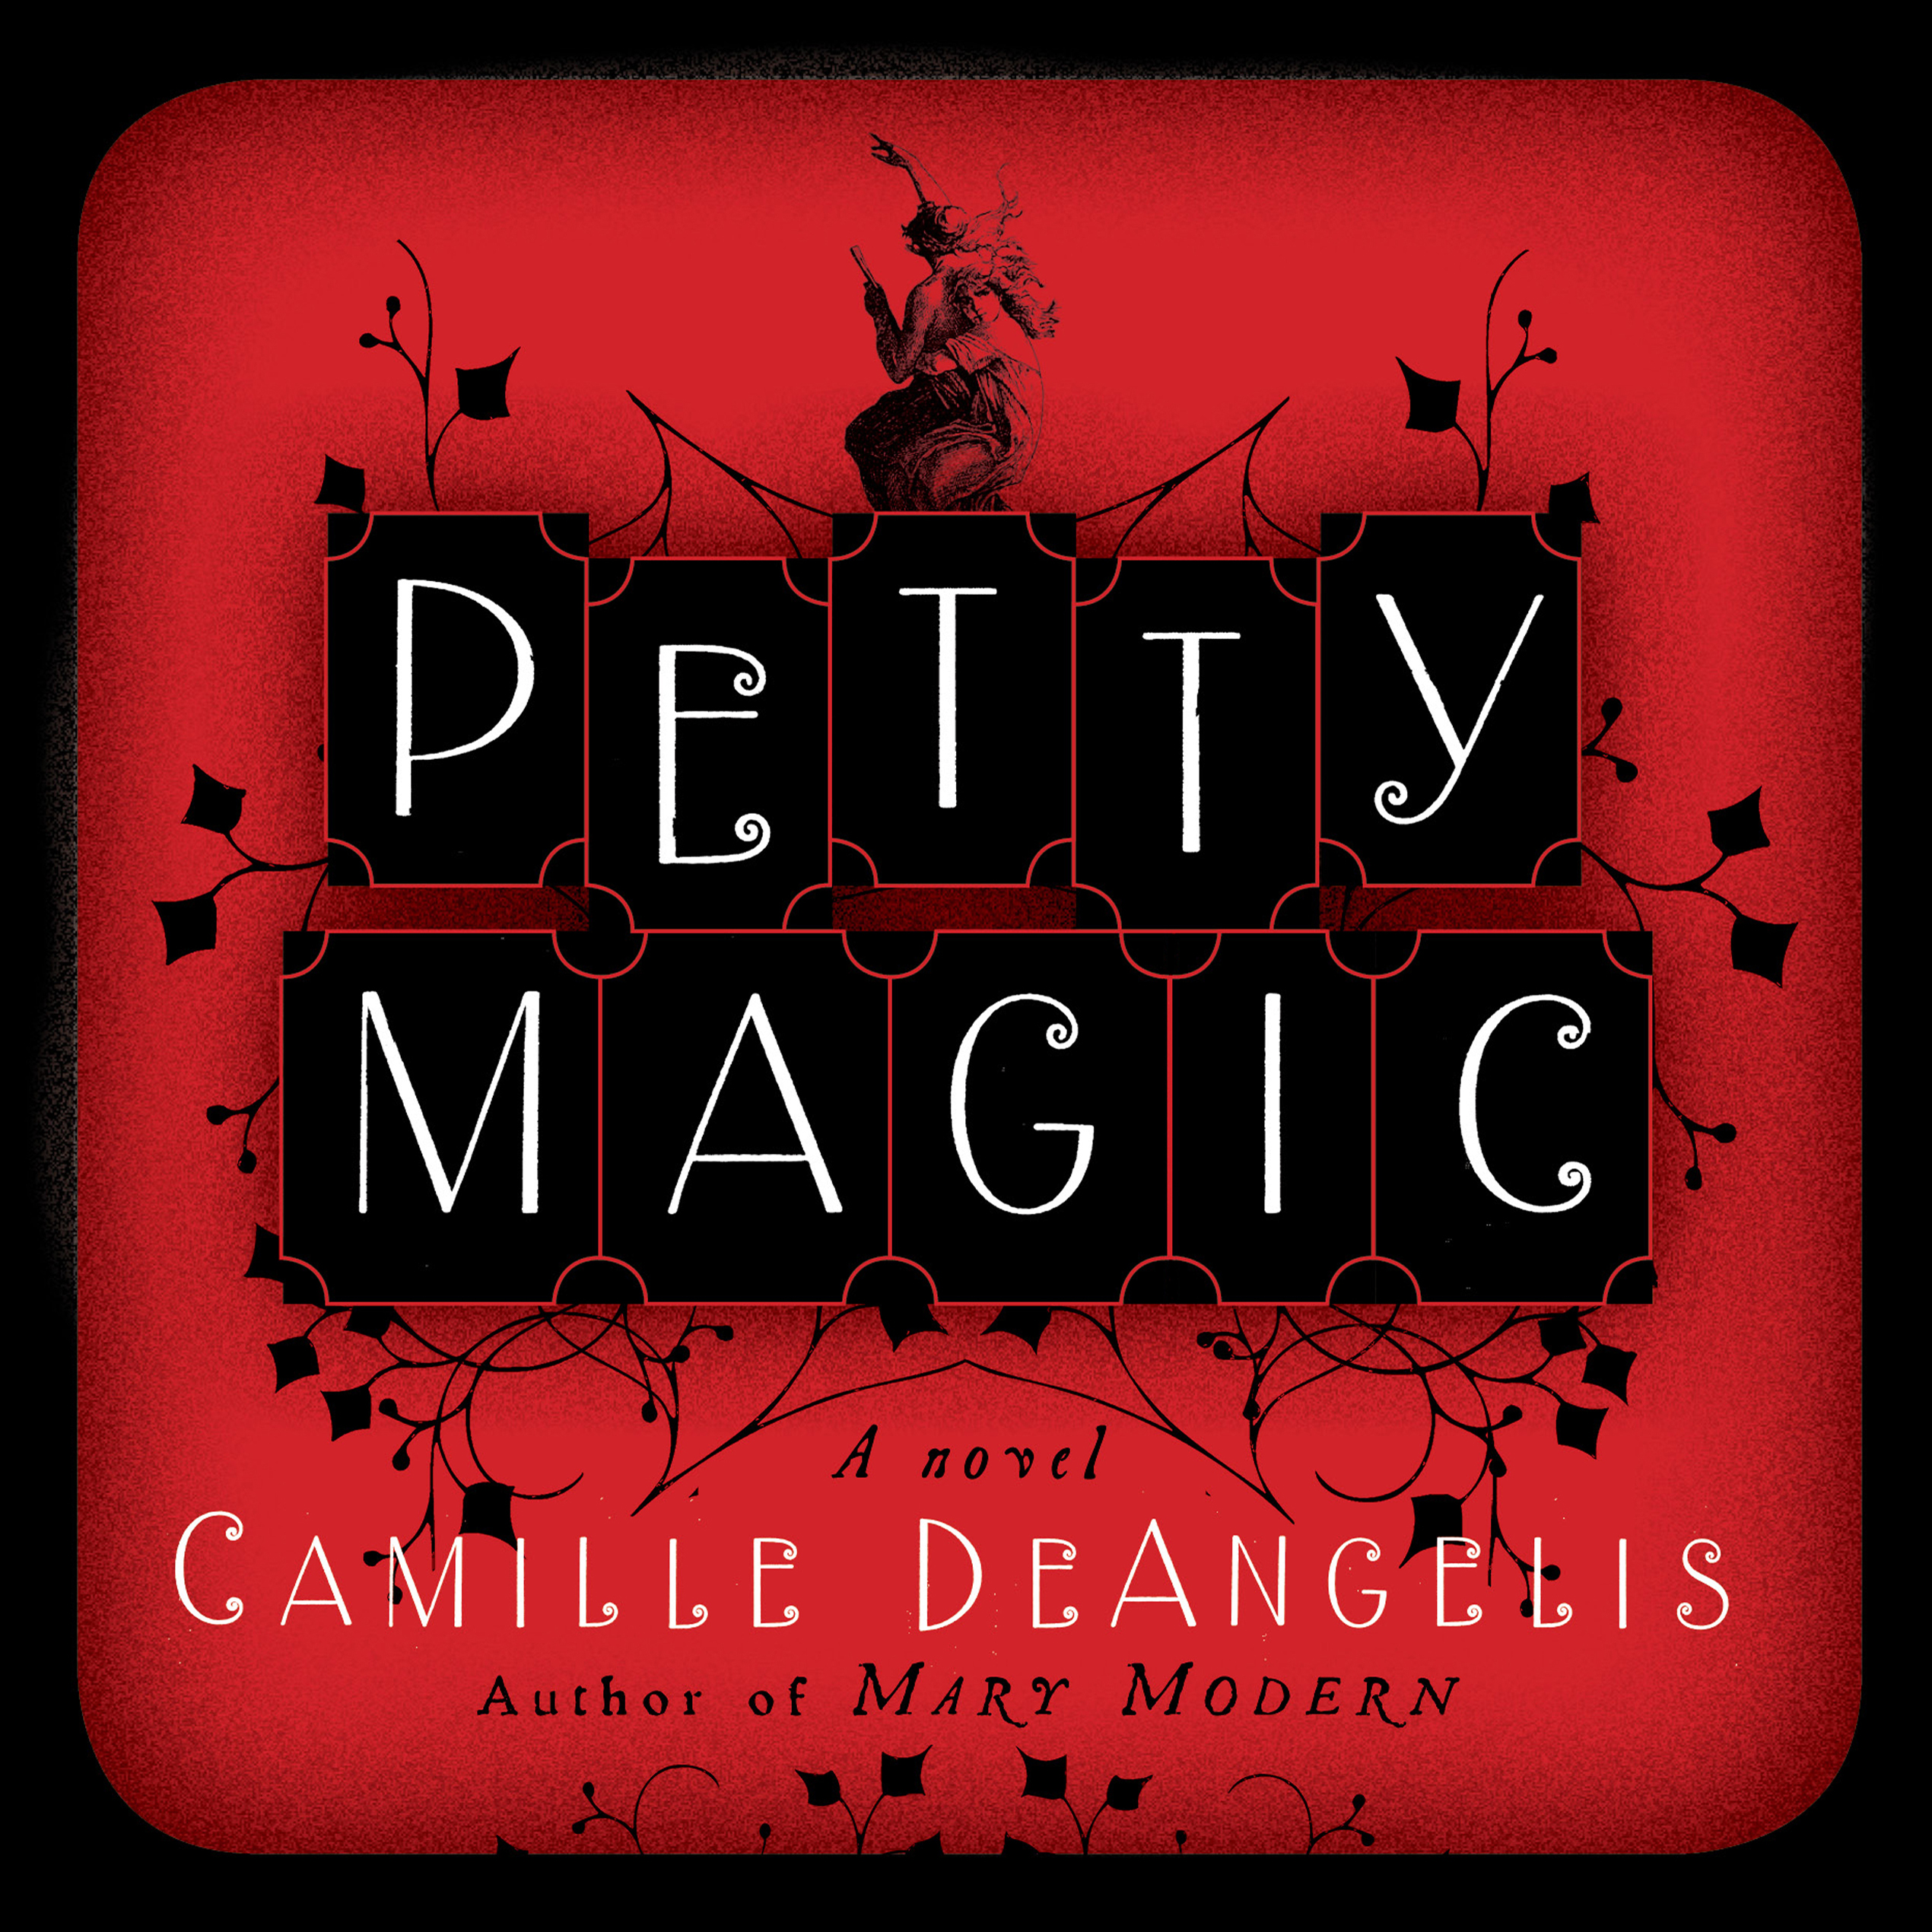 PETTY MAGIC 6.27.13front